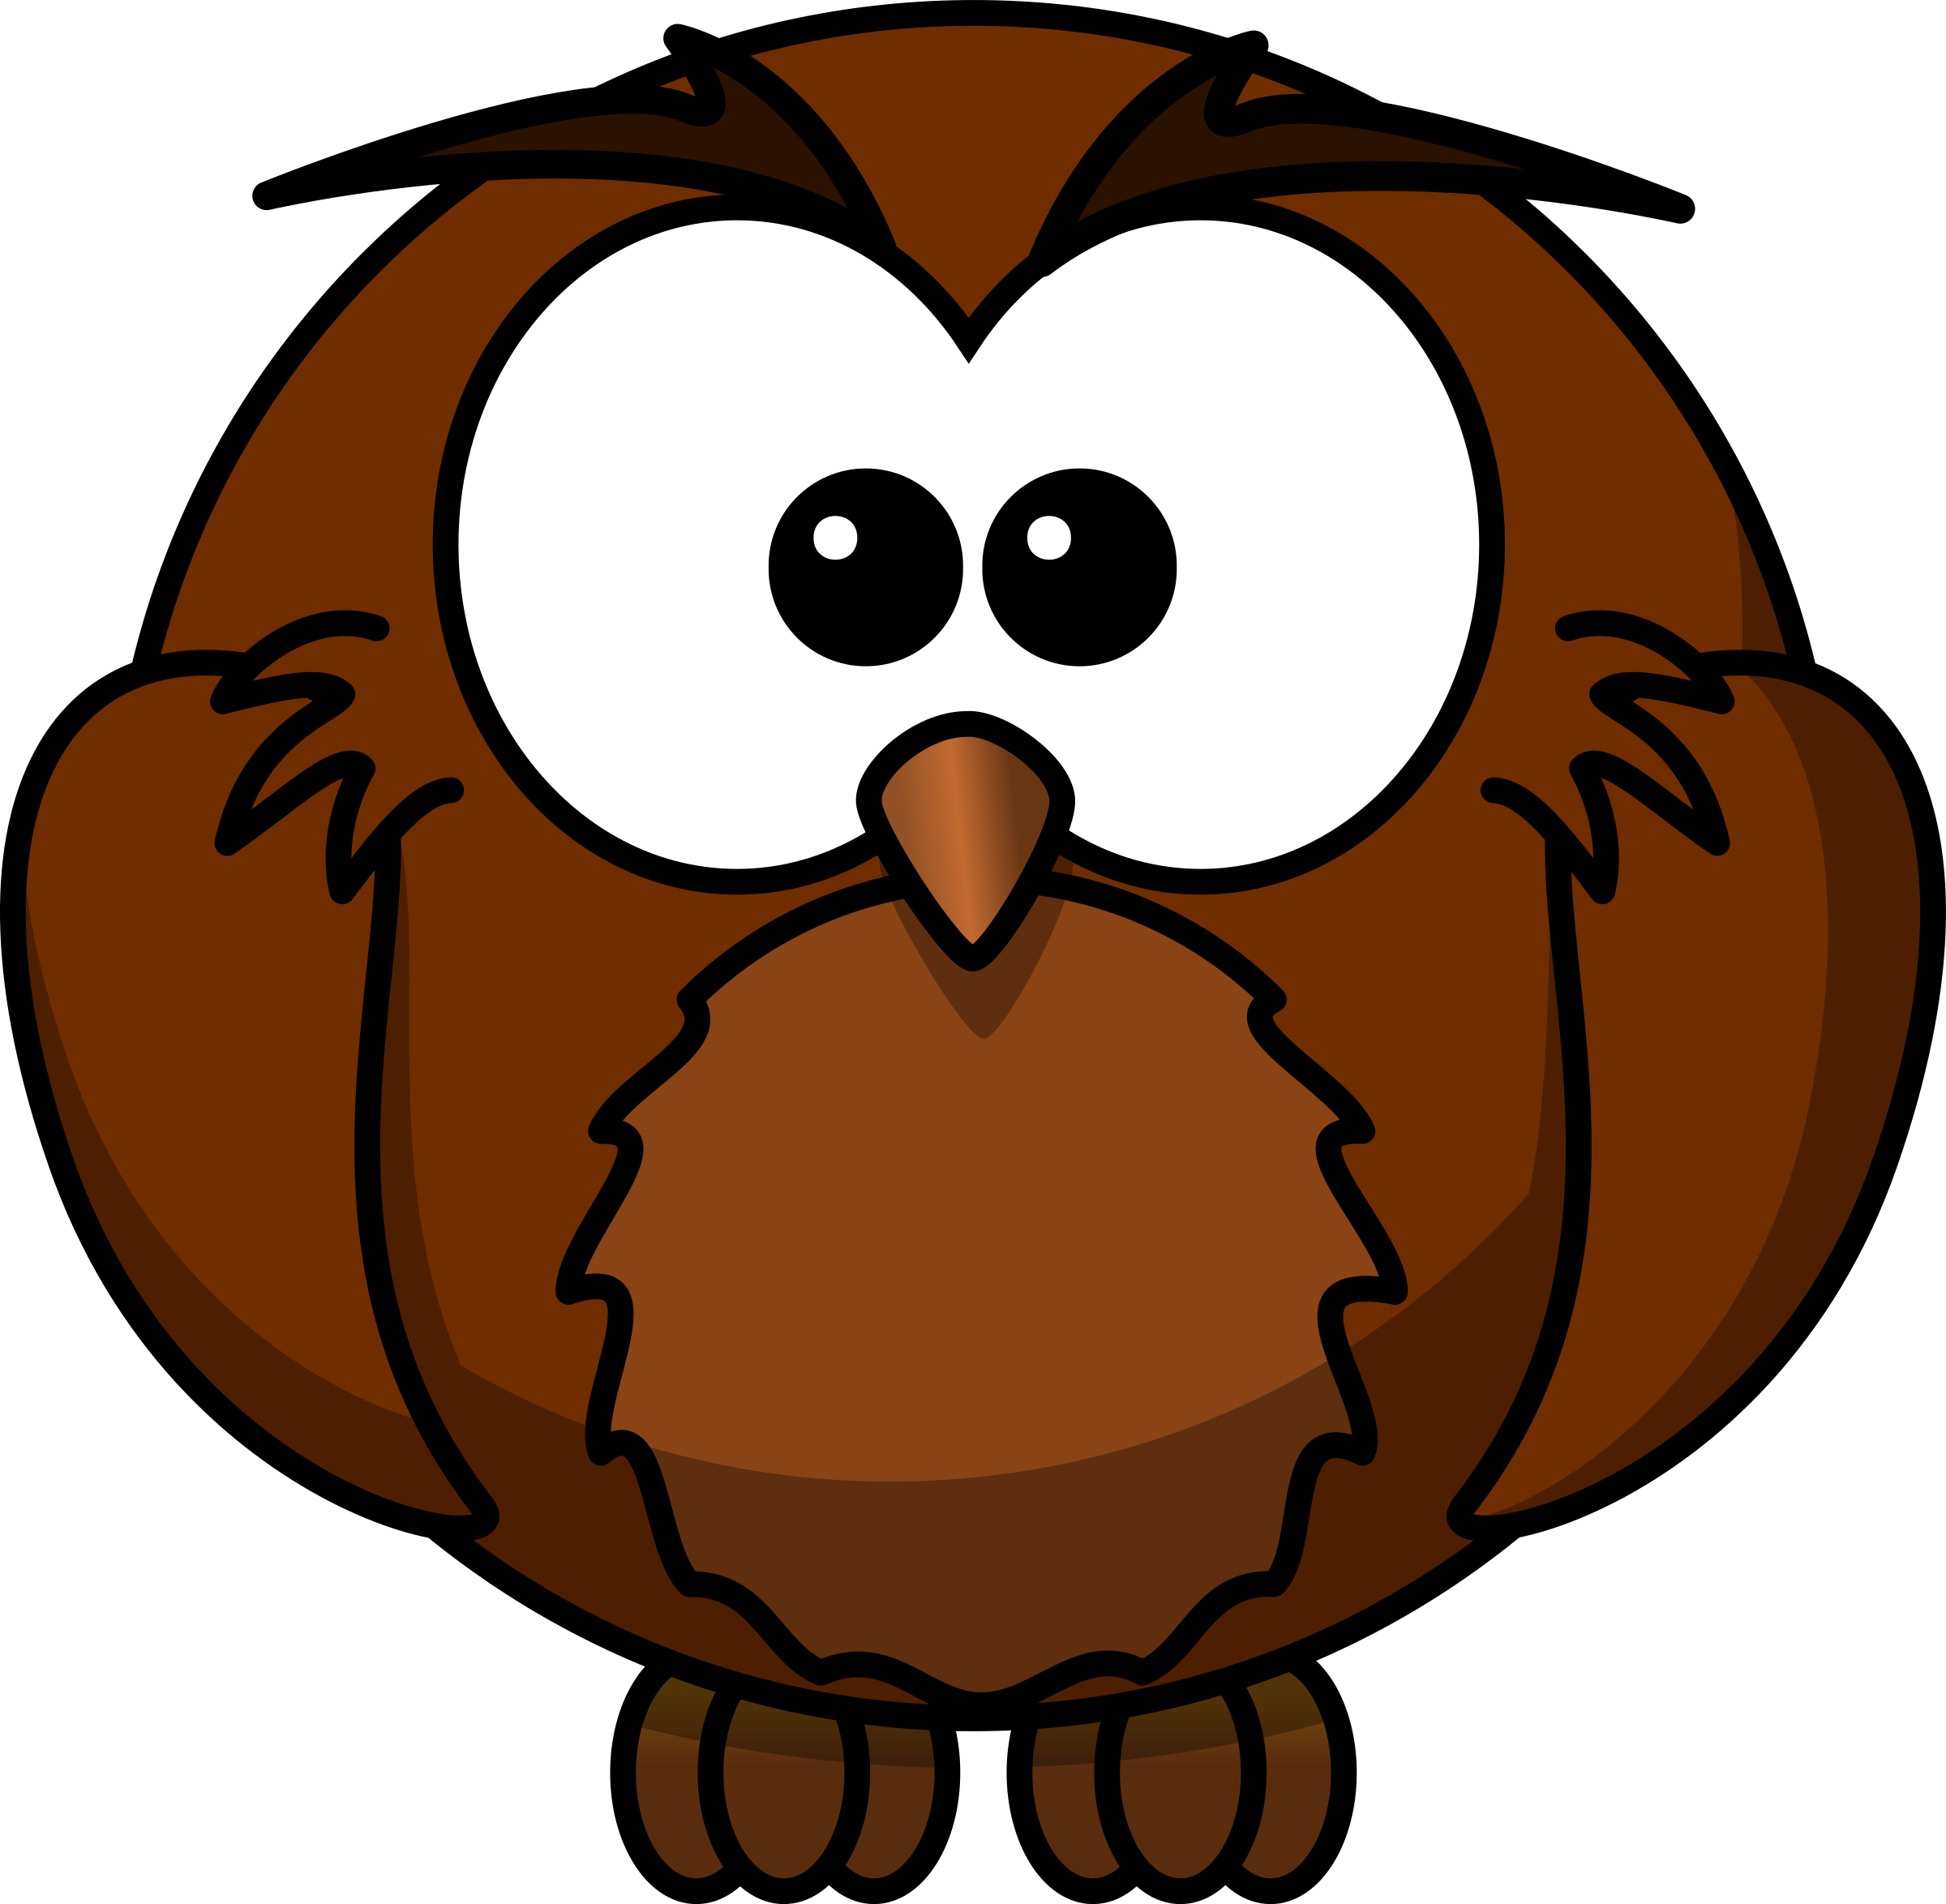 graphic free Listen clipart cartoon. Wise owl who has.